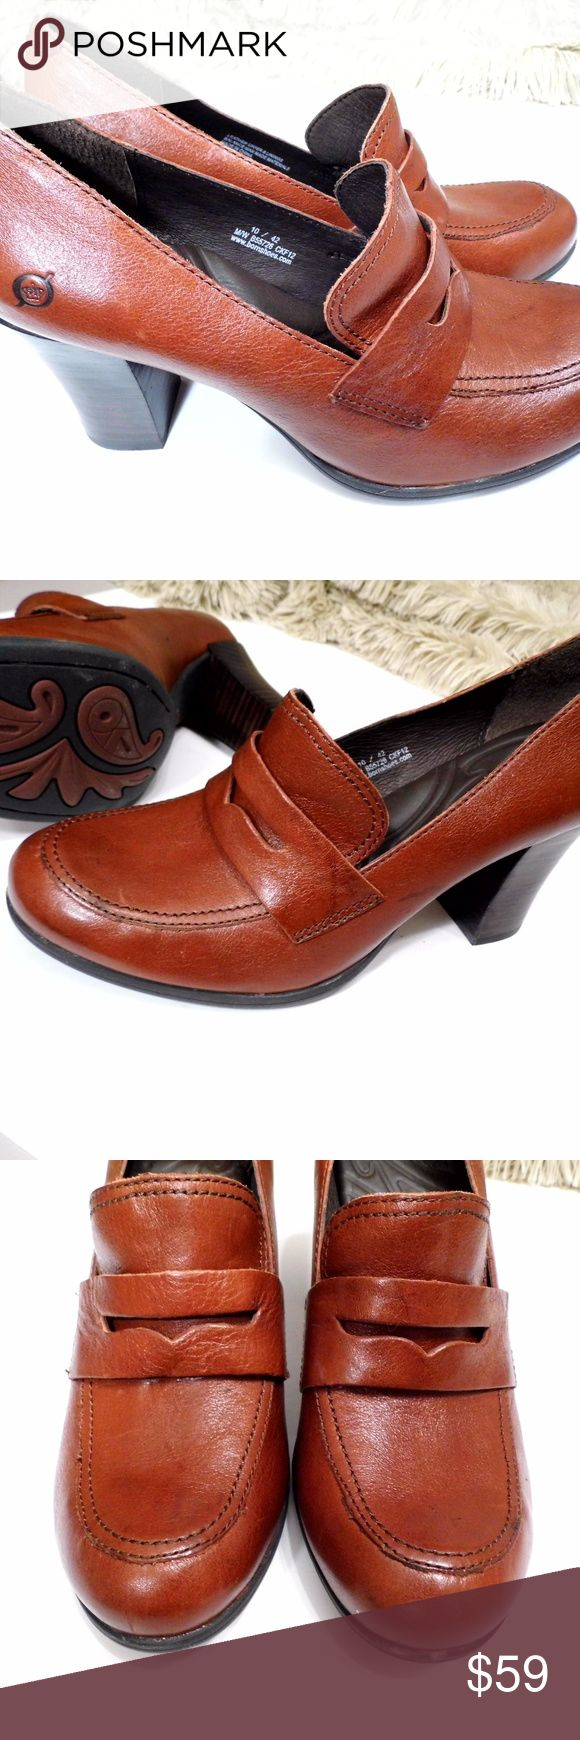 Born Brown Penny Loafers with block heels Excellent used condition. Like new! Very nice! Born Shoes